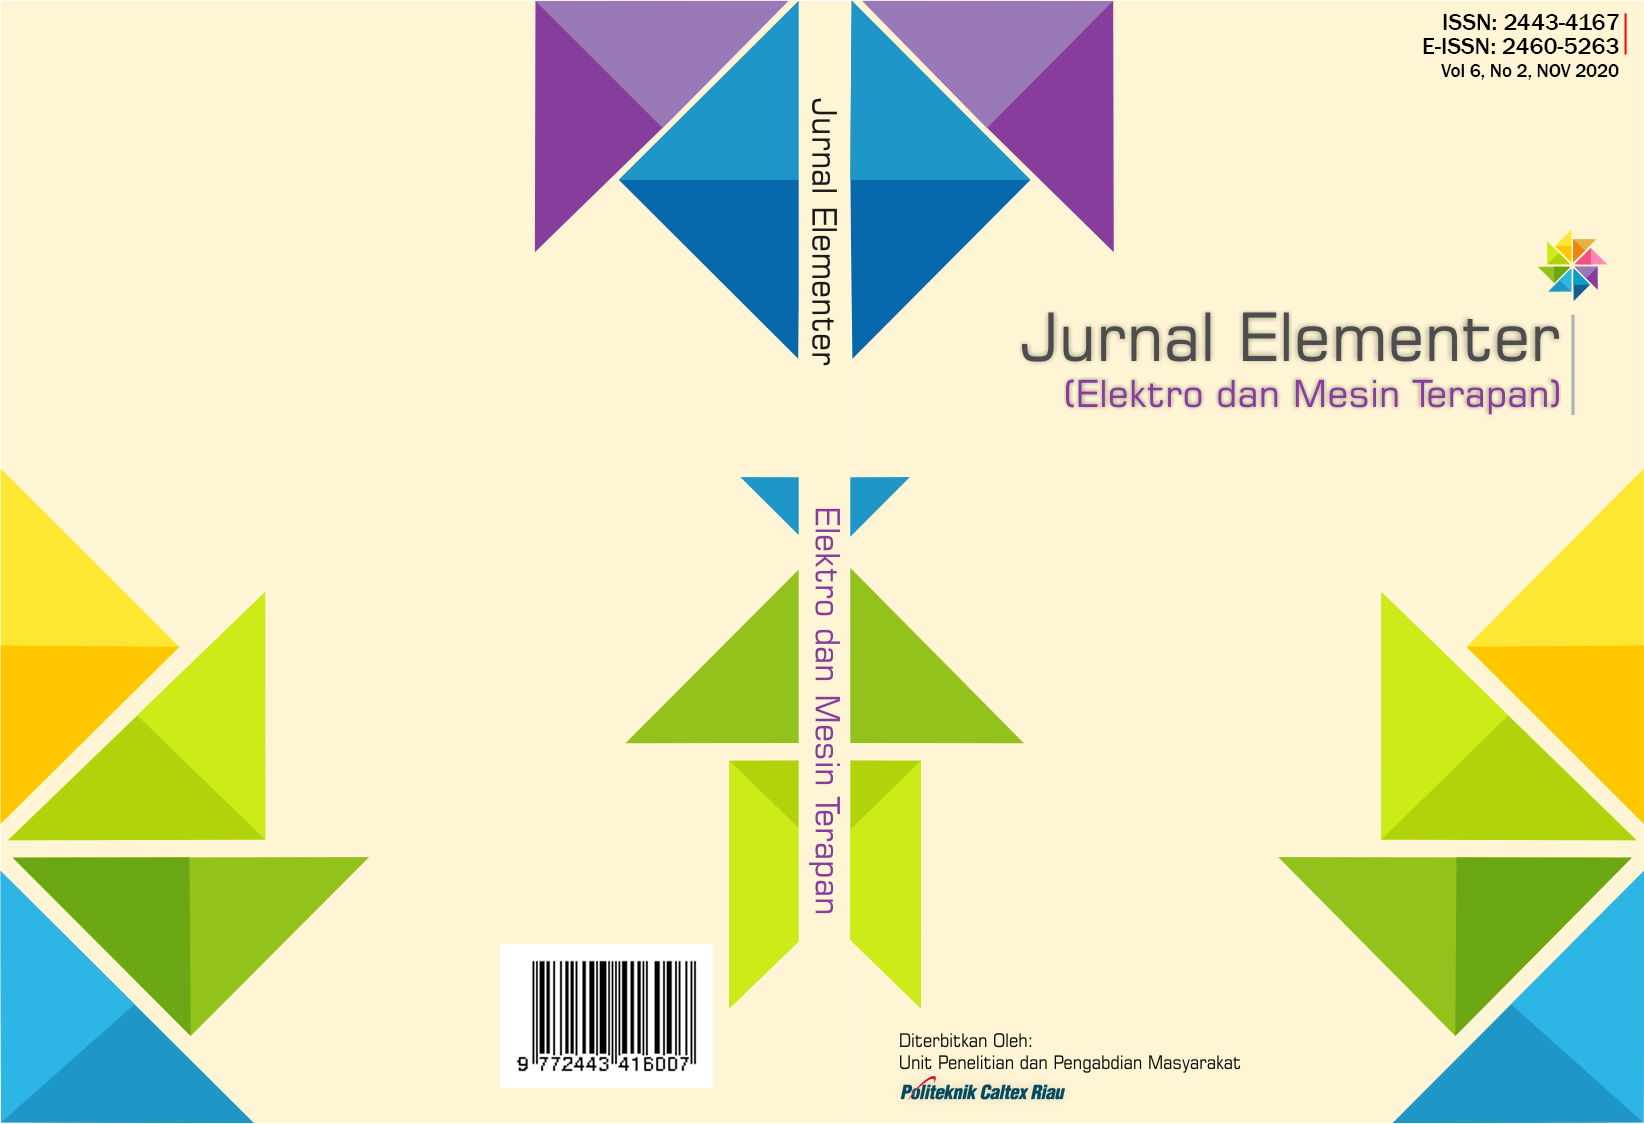 Jurnal Elementer Terapan